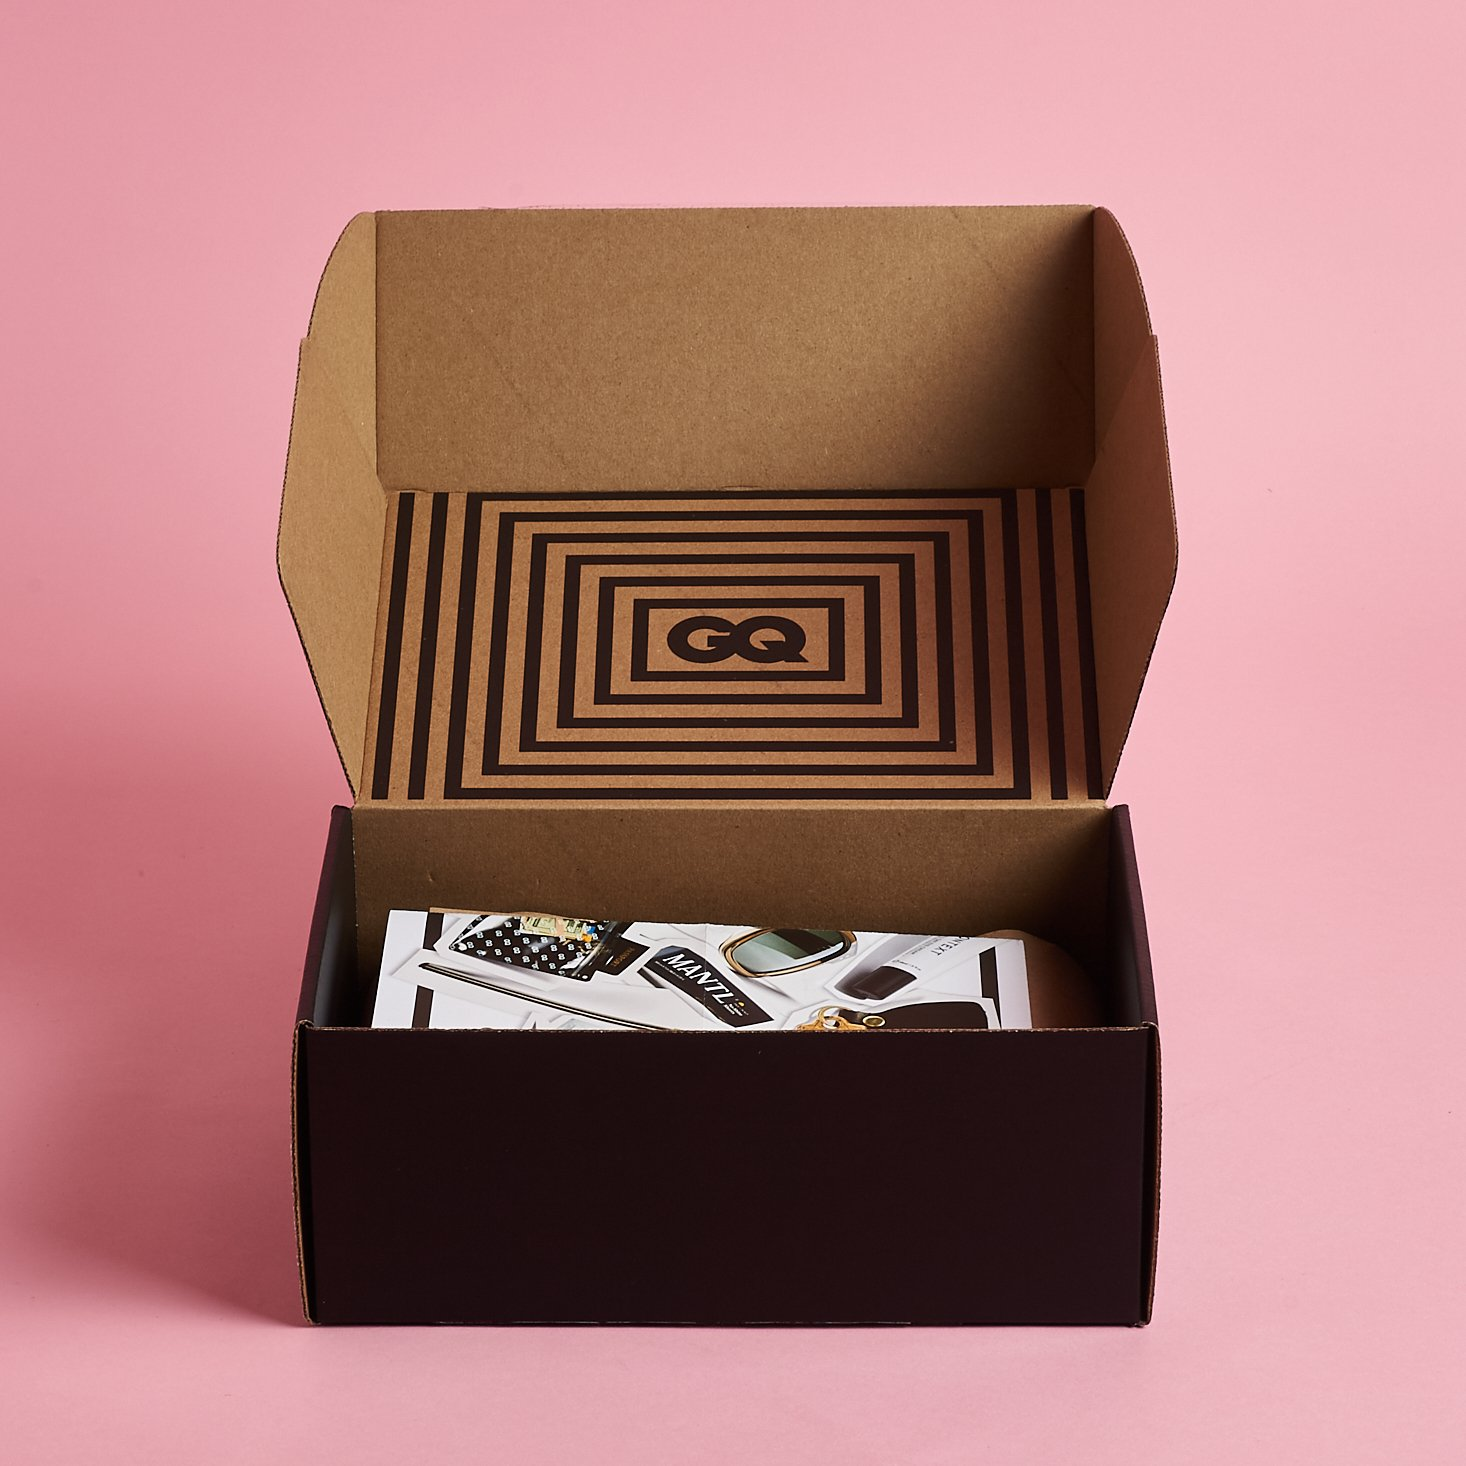 GQ Best Stuff Box: Get Free Bombas With Your Purchase